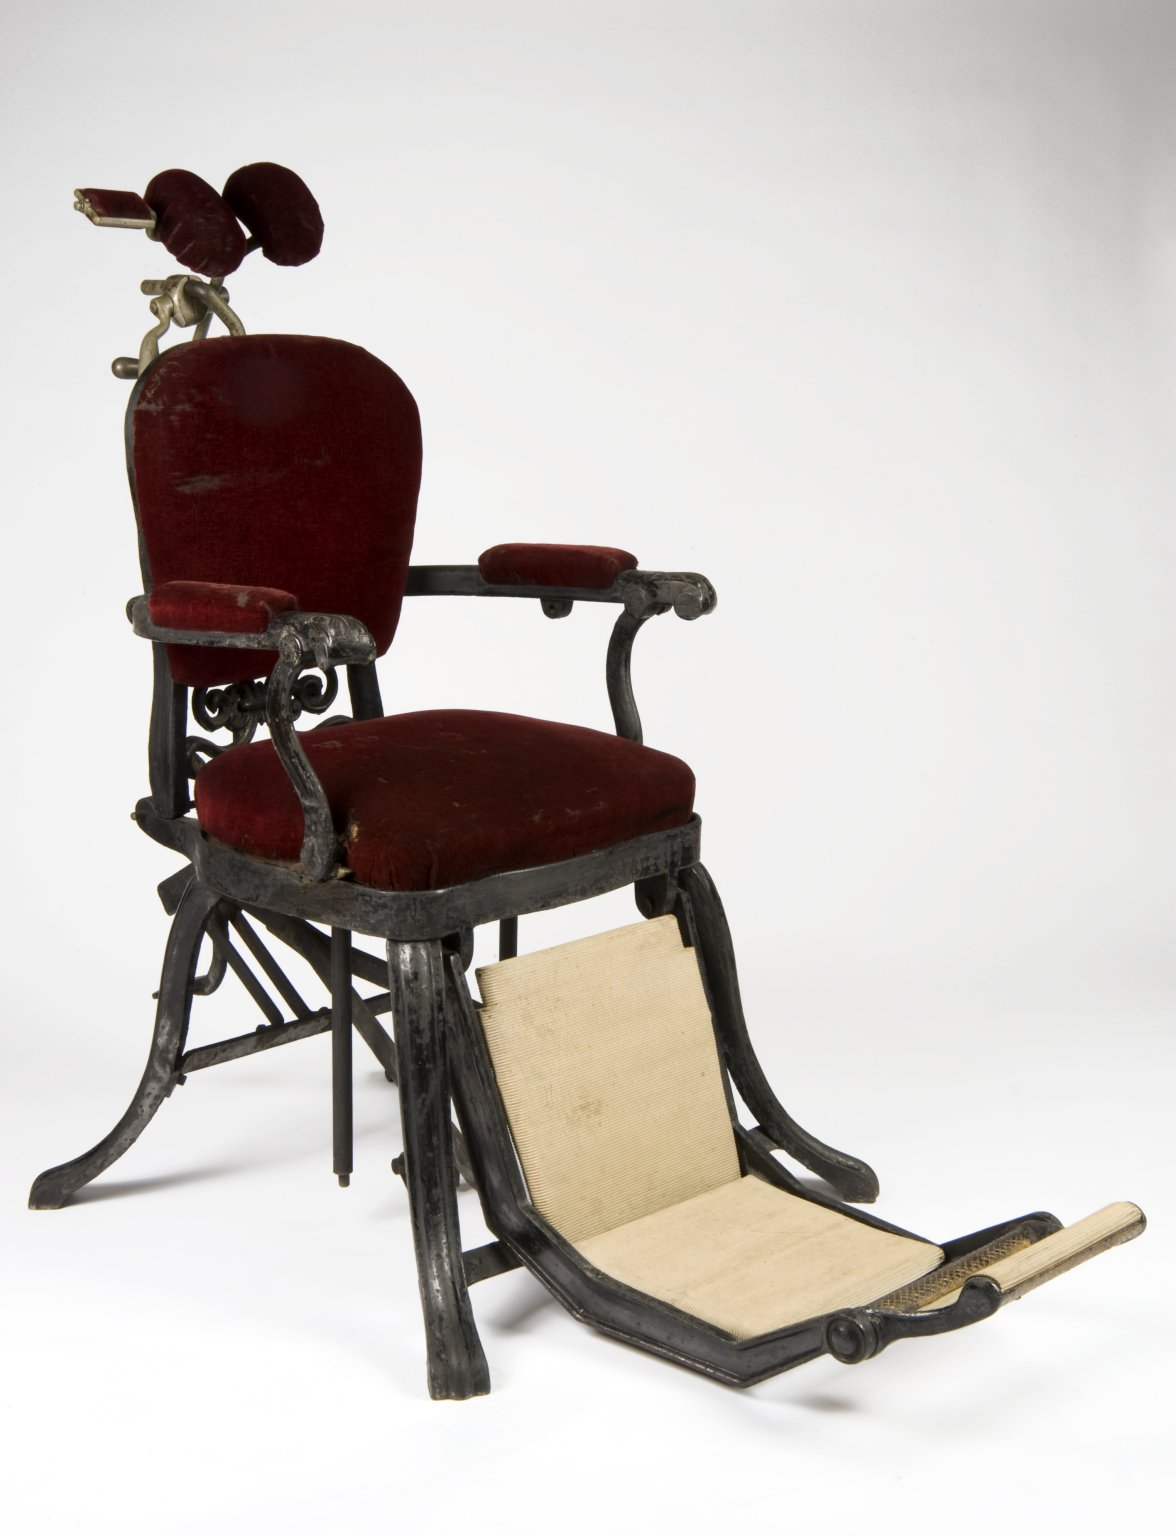 first high chair invented wicker desk lindsey fitzharris on twitter quotvictorian dental